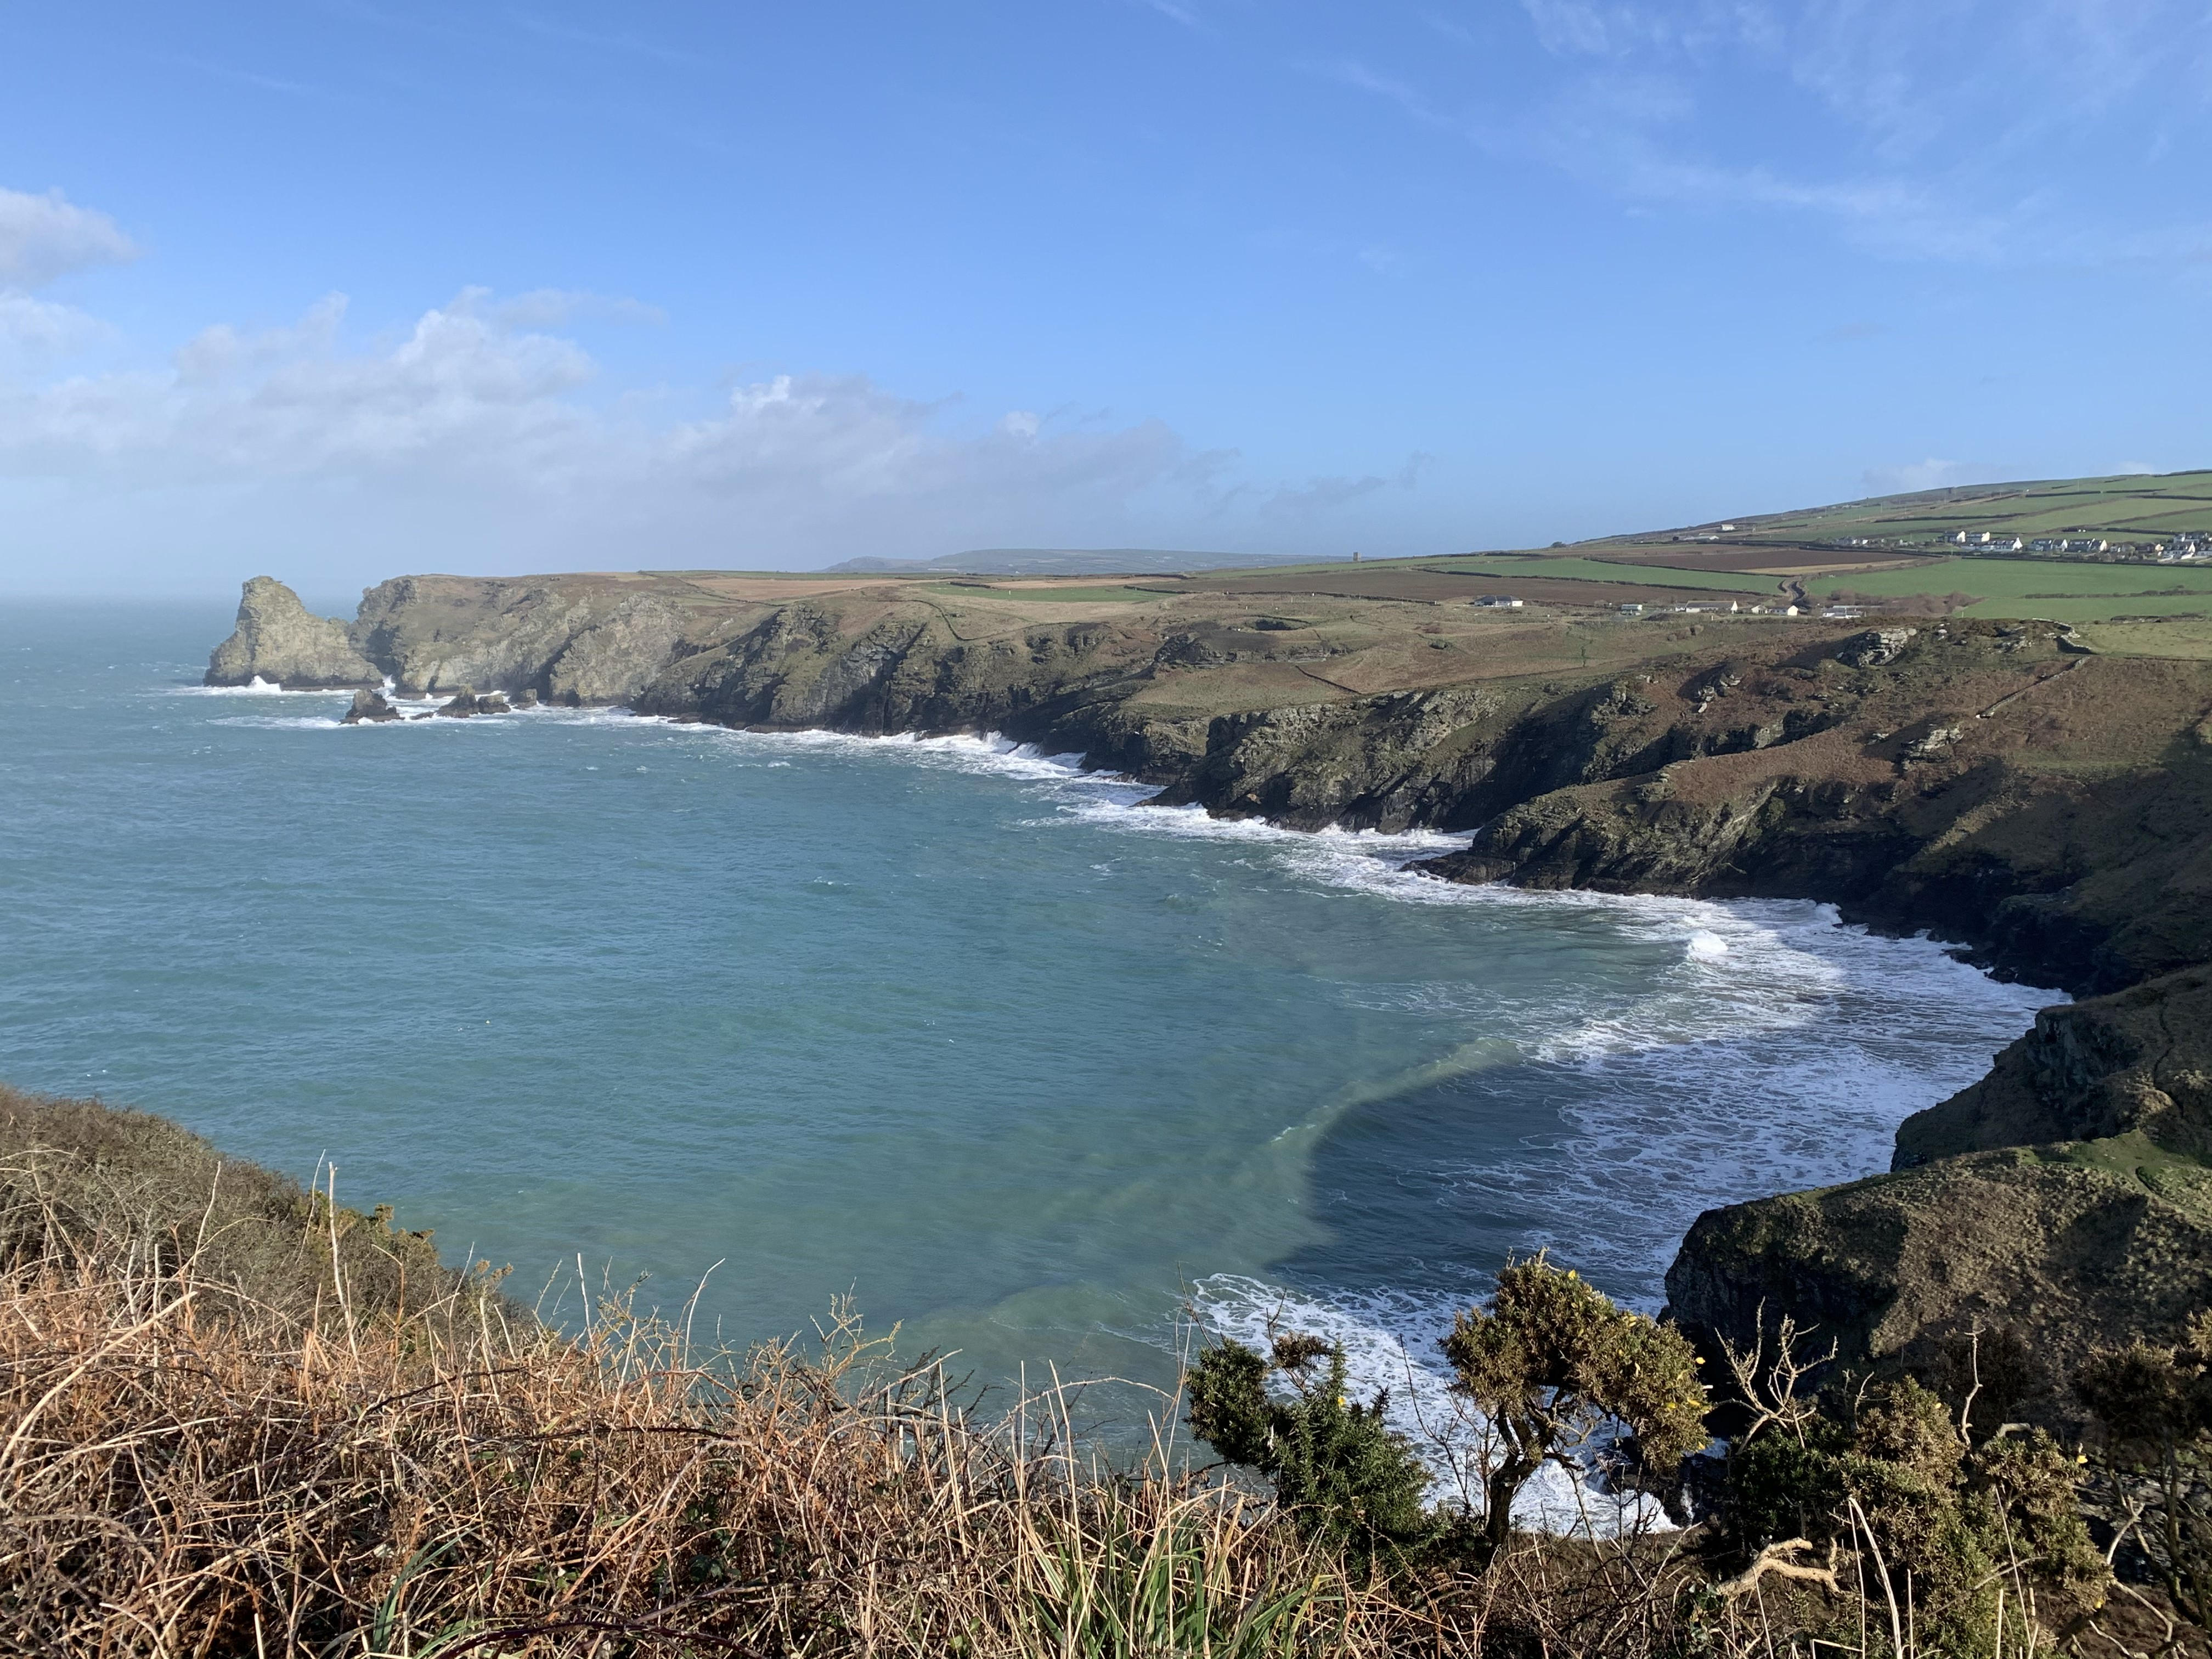 Stunning coastal scenery on The South West Coast Path walk from Boscastle to Tintagel